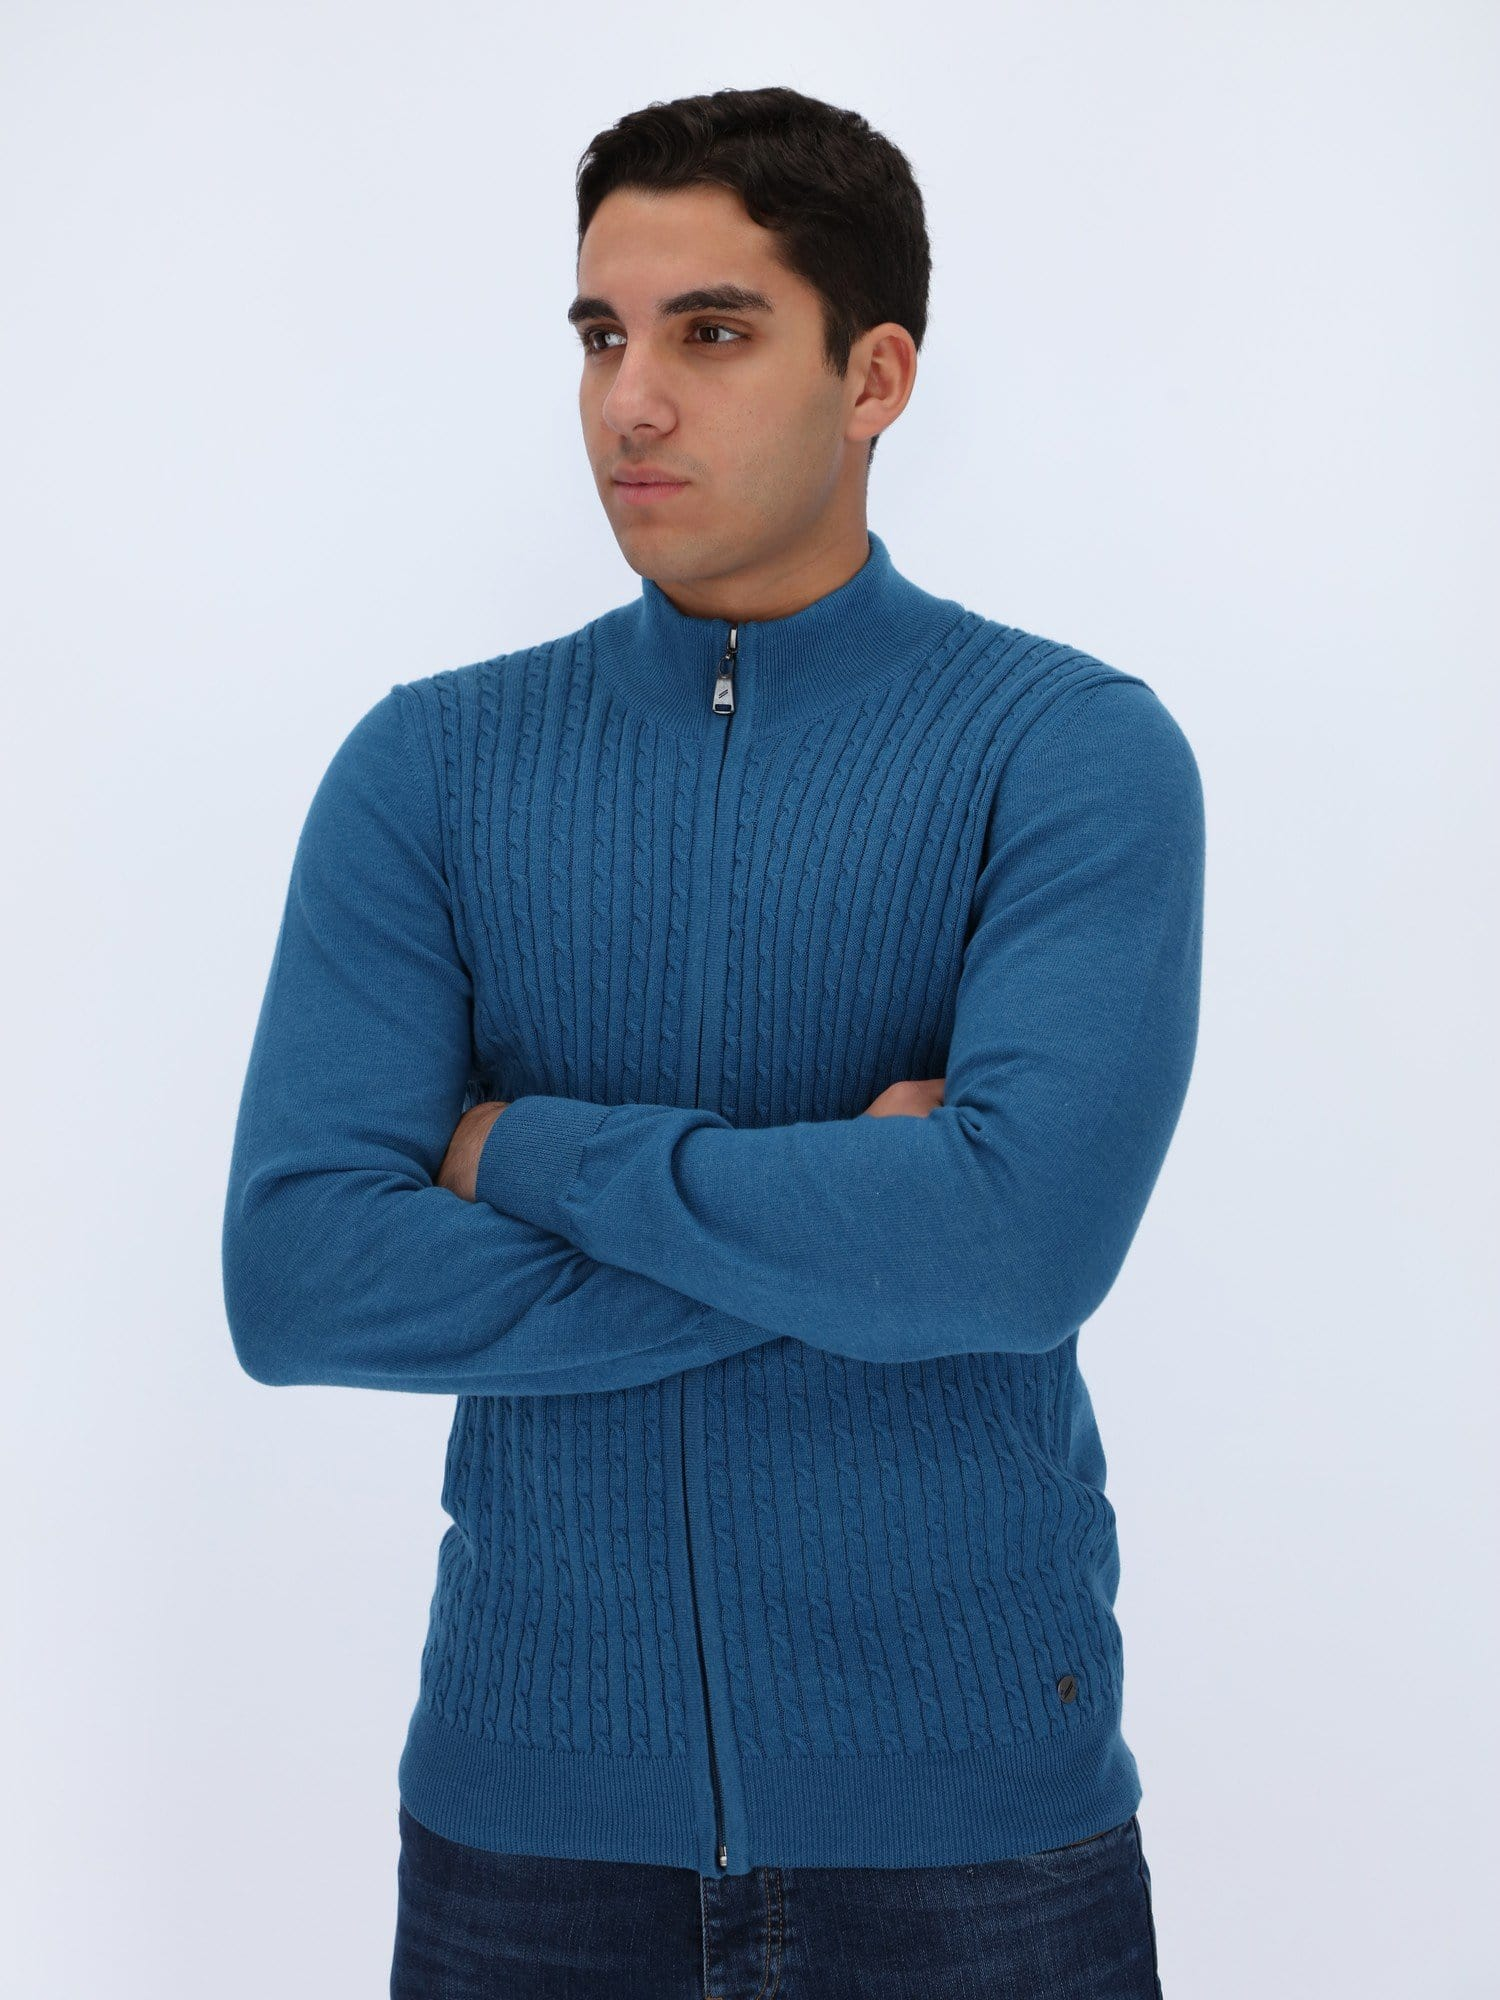 Daniel Hechter Knitwear BLUE MARINE / M Braided Cables Cardigan with Zipper